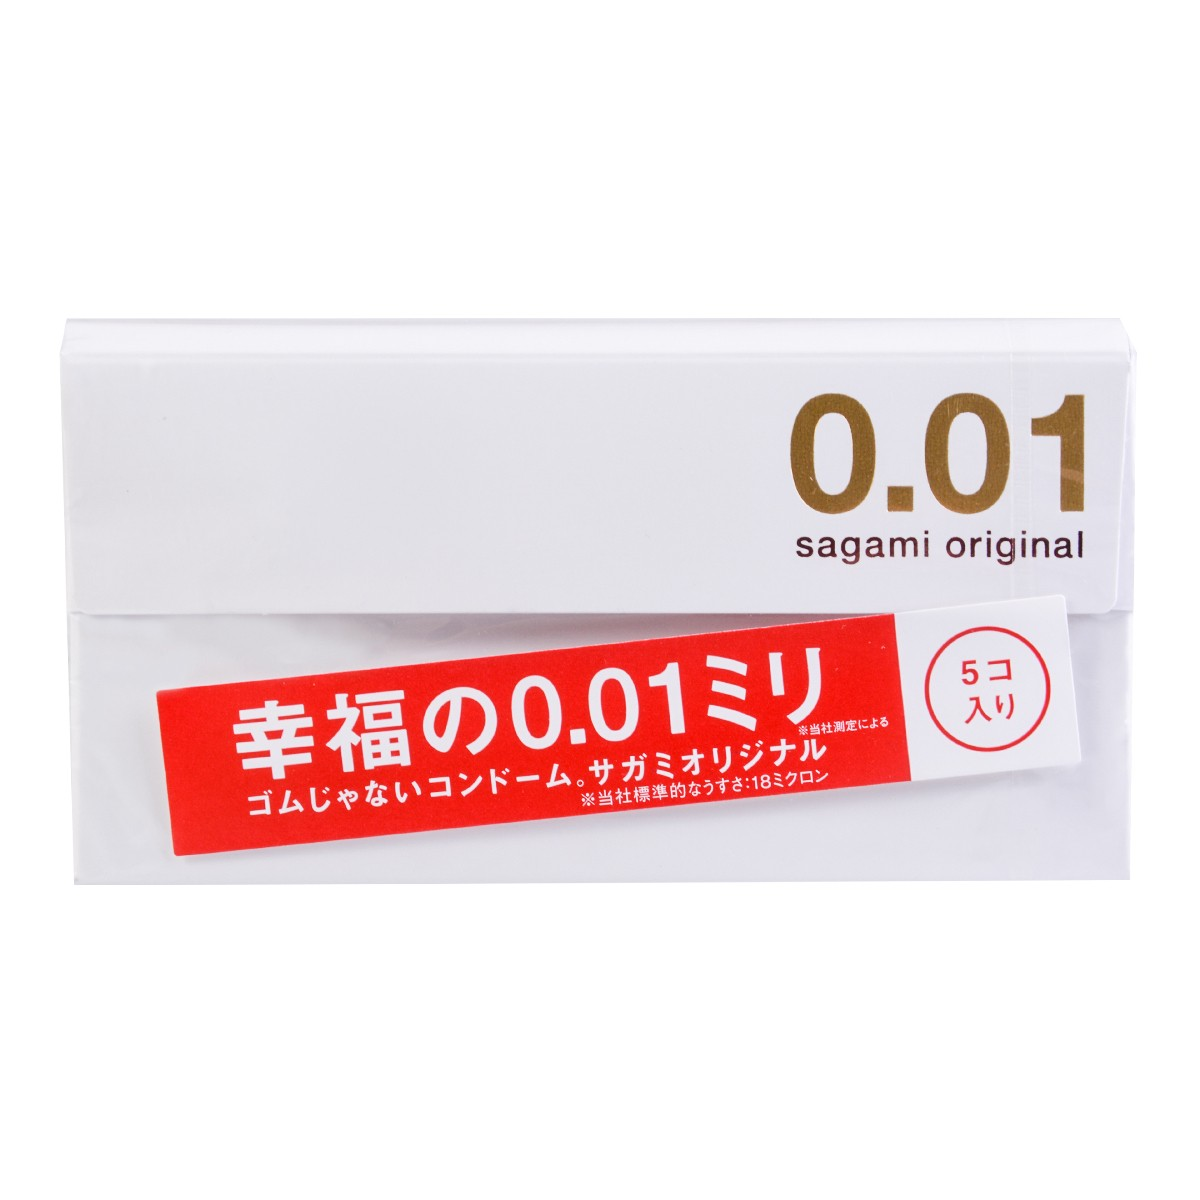 SAGAMI 001 original condoms 5pcs